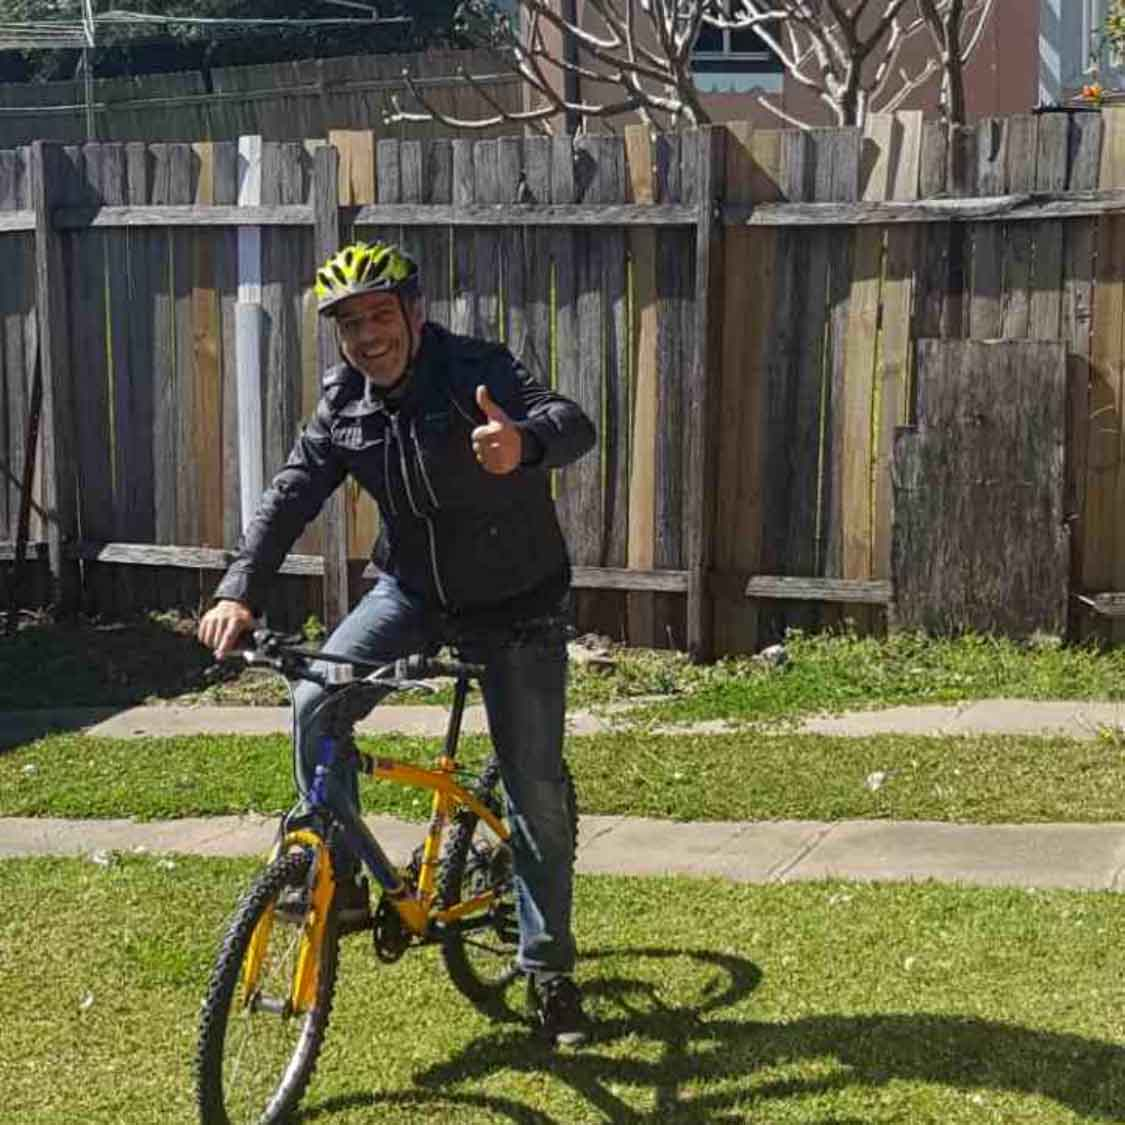 Sam's Bikes Recipient who now rides his bike to work.